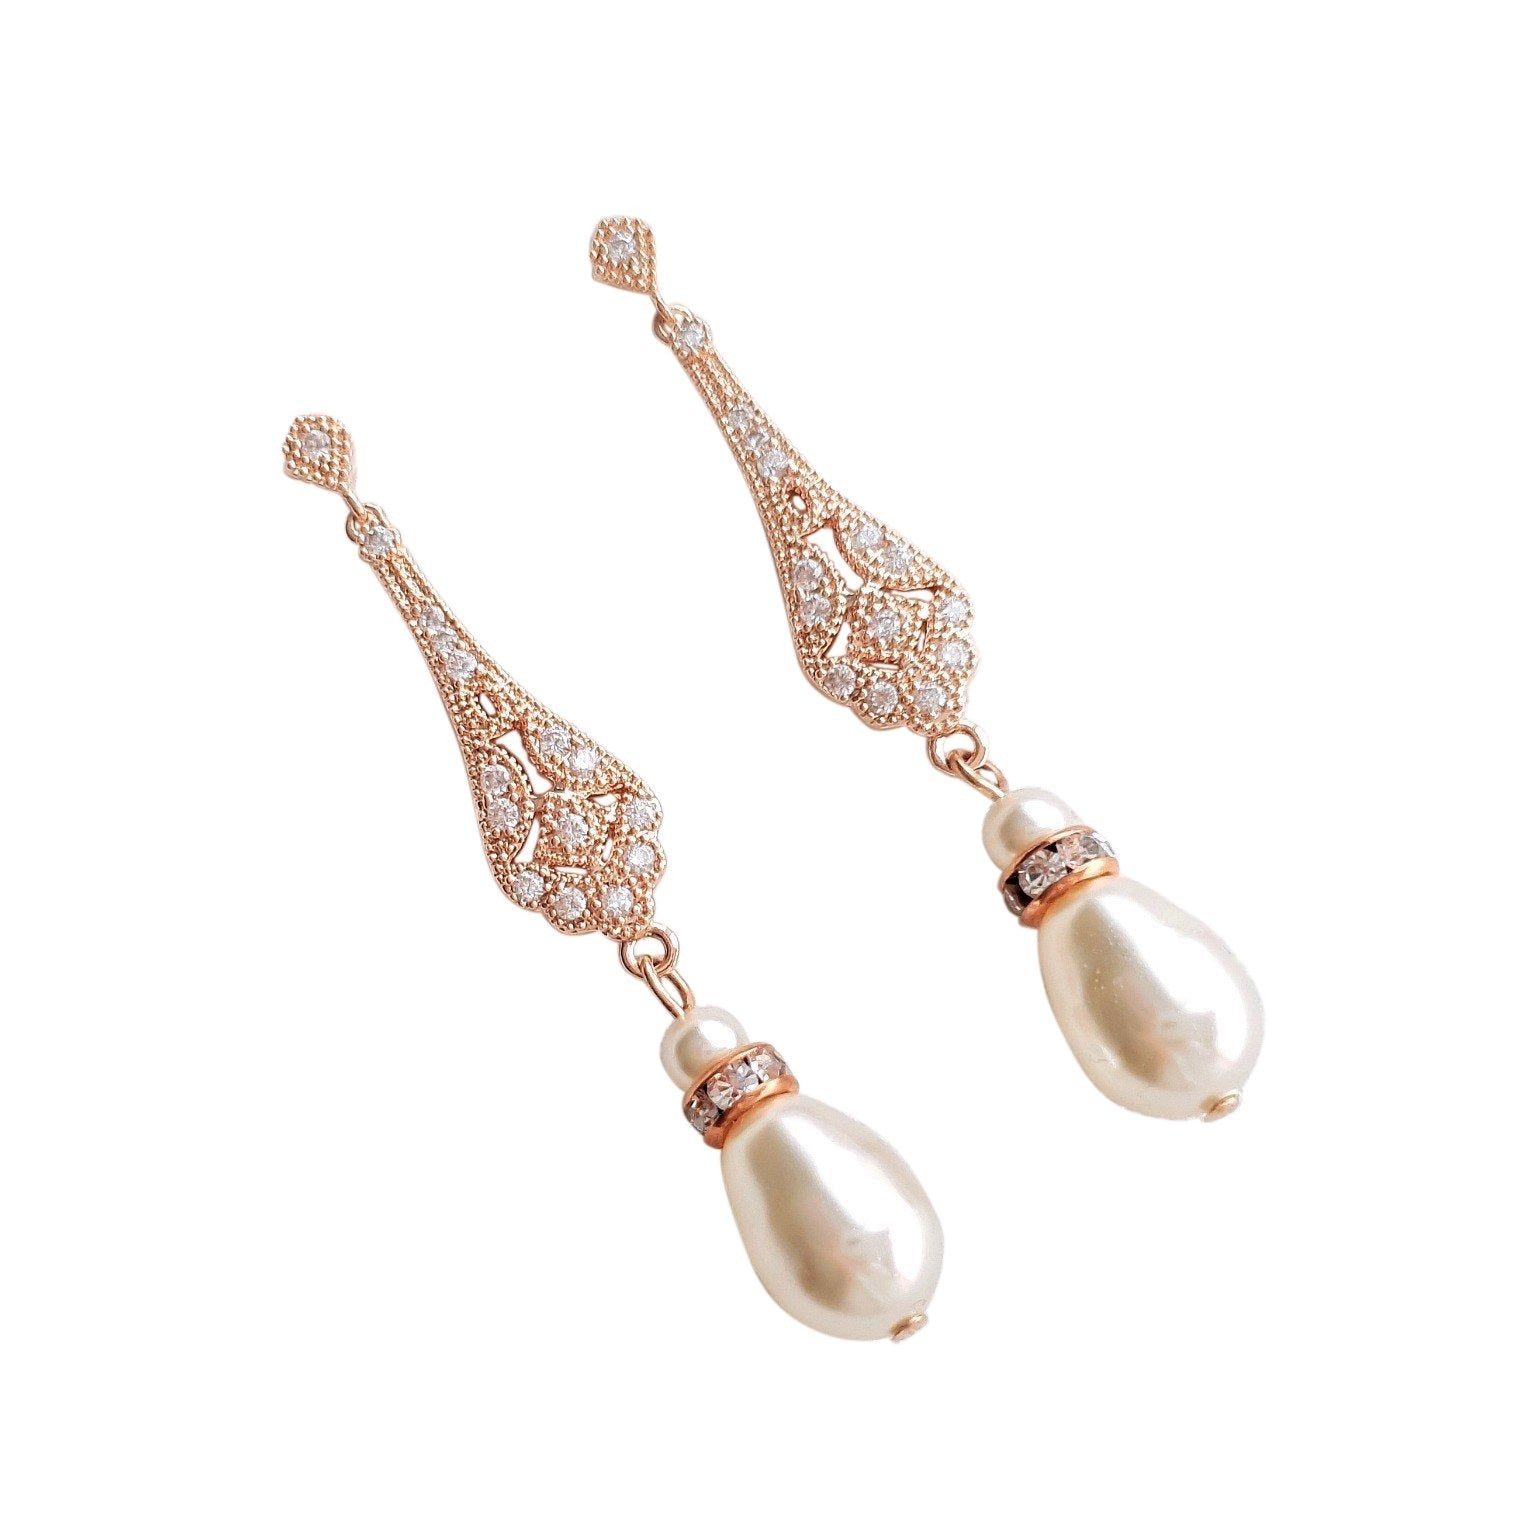 Vintage Style Rose Gold Bridal Earrings-Lisa